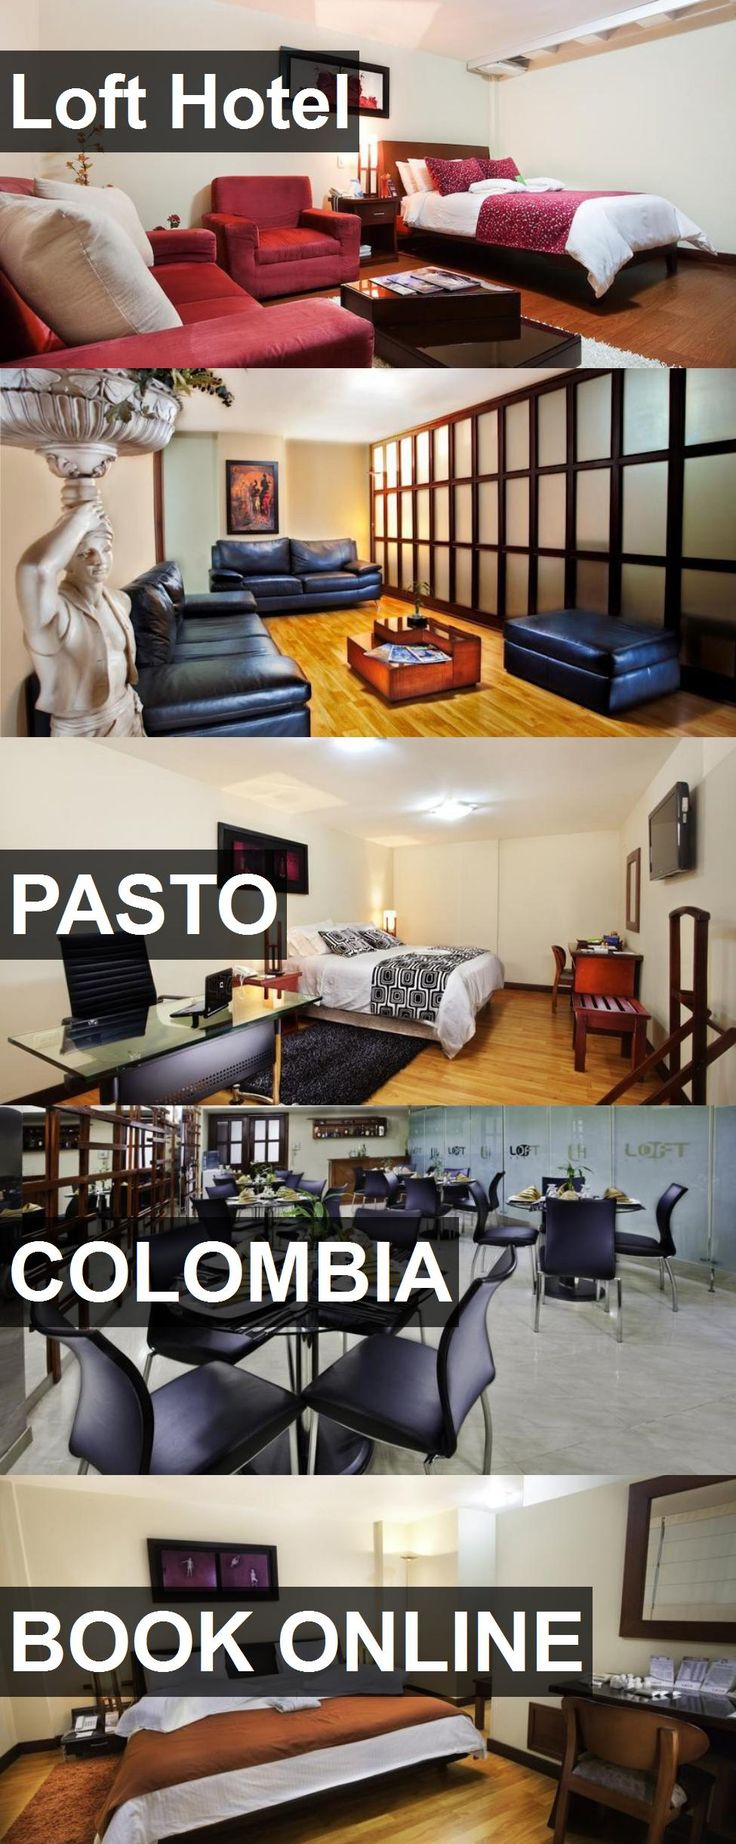 Loft Hotel in Pasto, Colombia. For more information, photos, reviews and best prices please follow the link. #Colombia #Pasto #travel #vacation #hotel